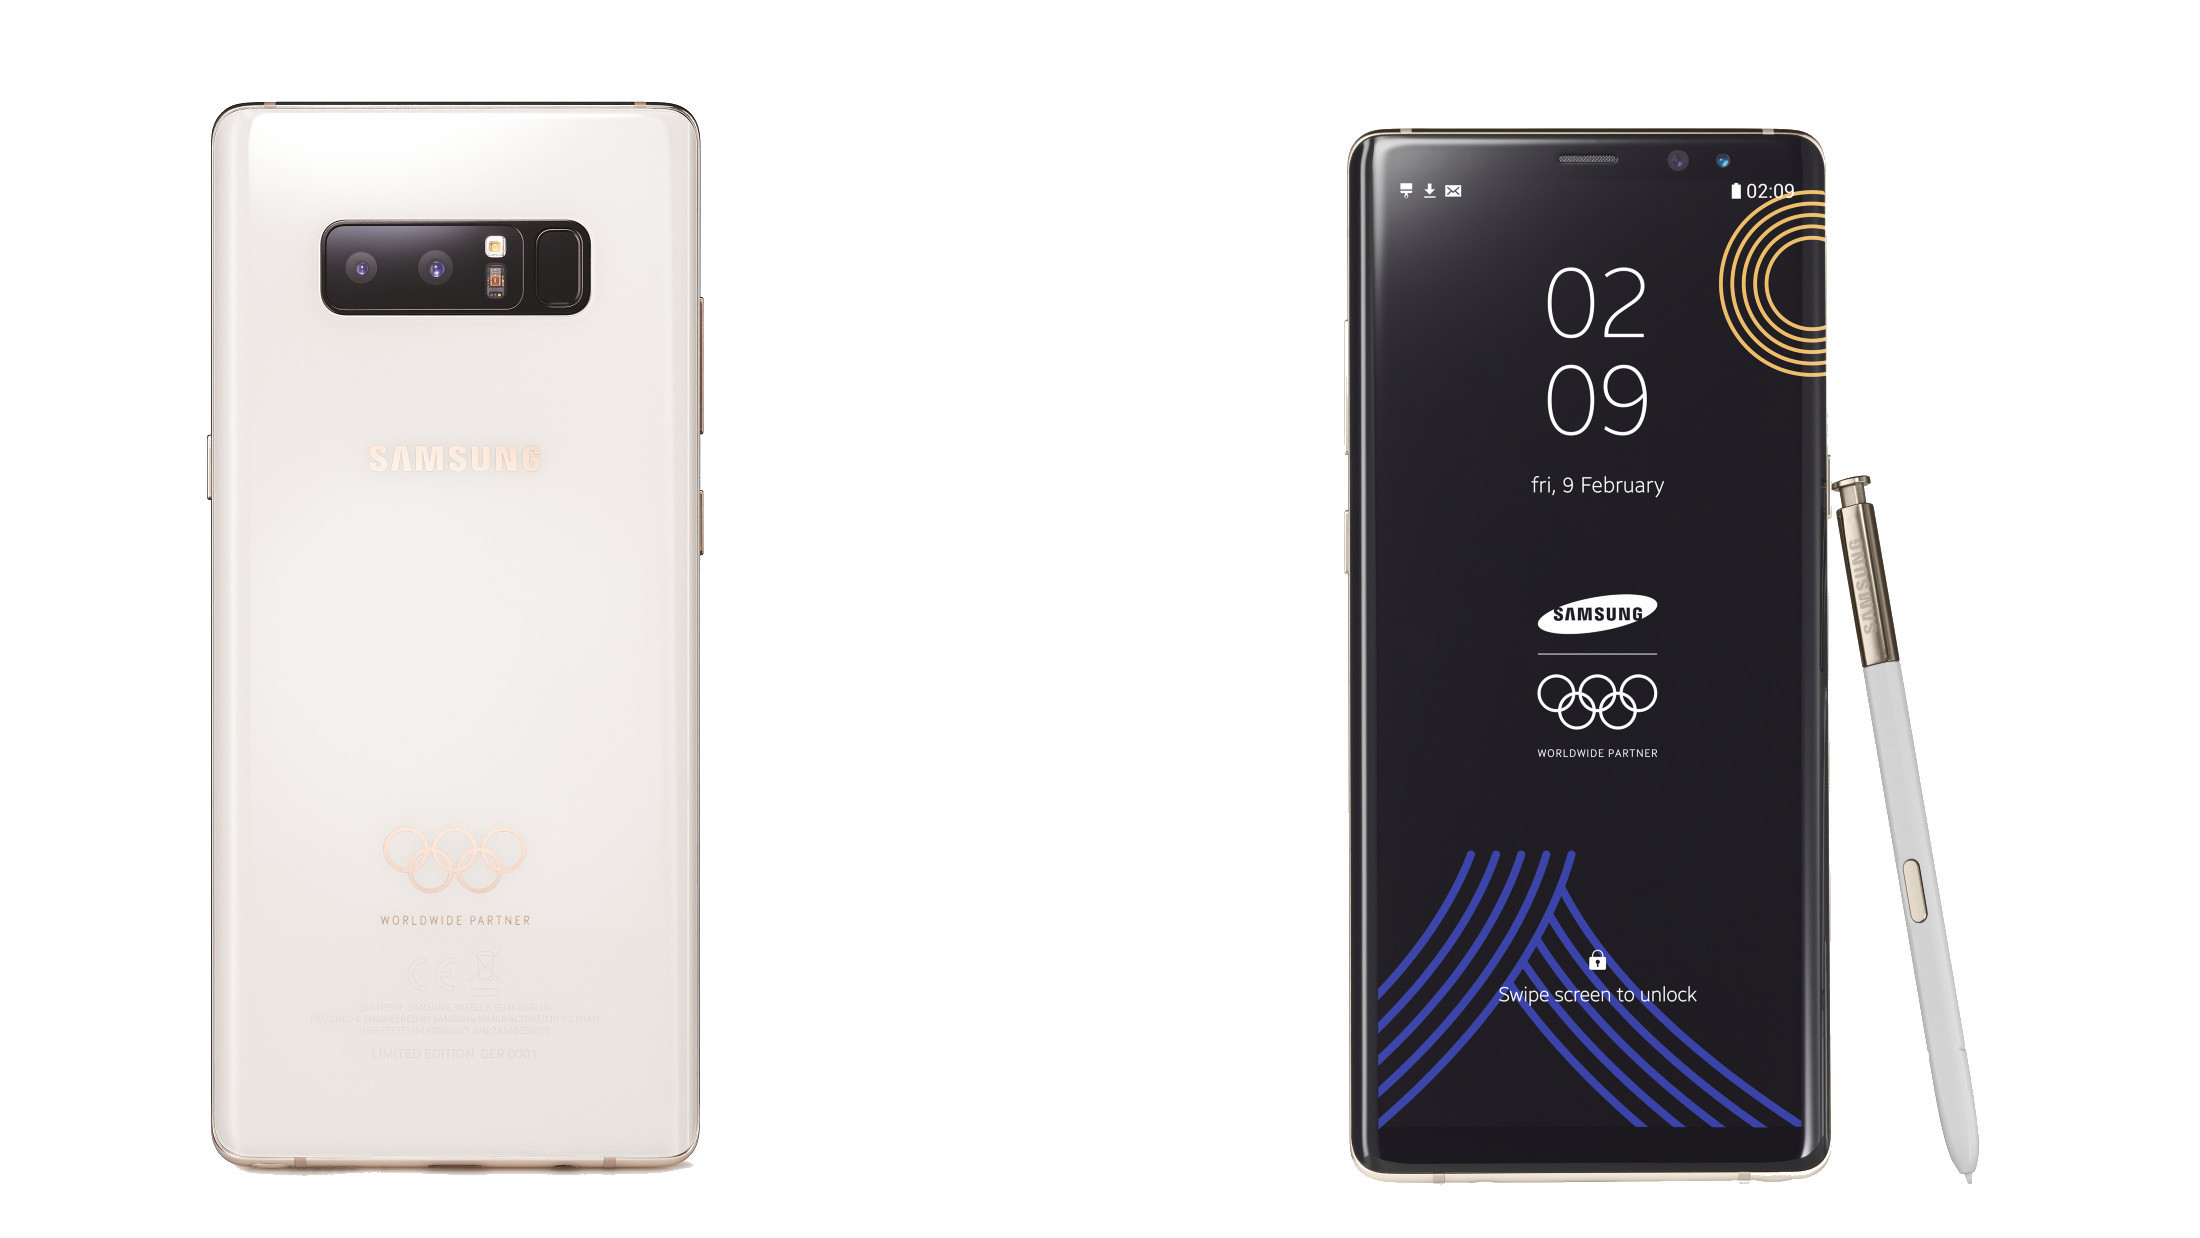 Samsung Hands Out Limited-Edition Olympic-Themed Galaxy Note 8